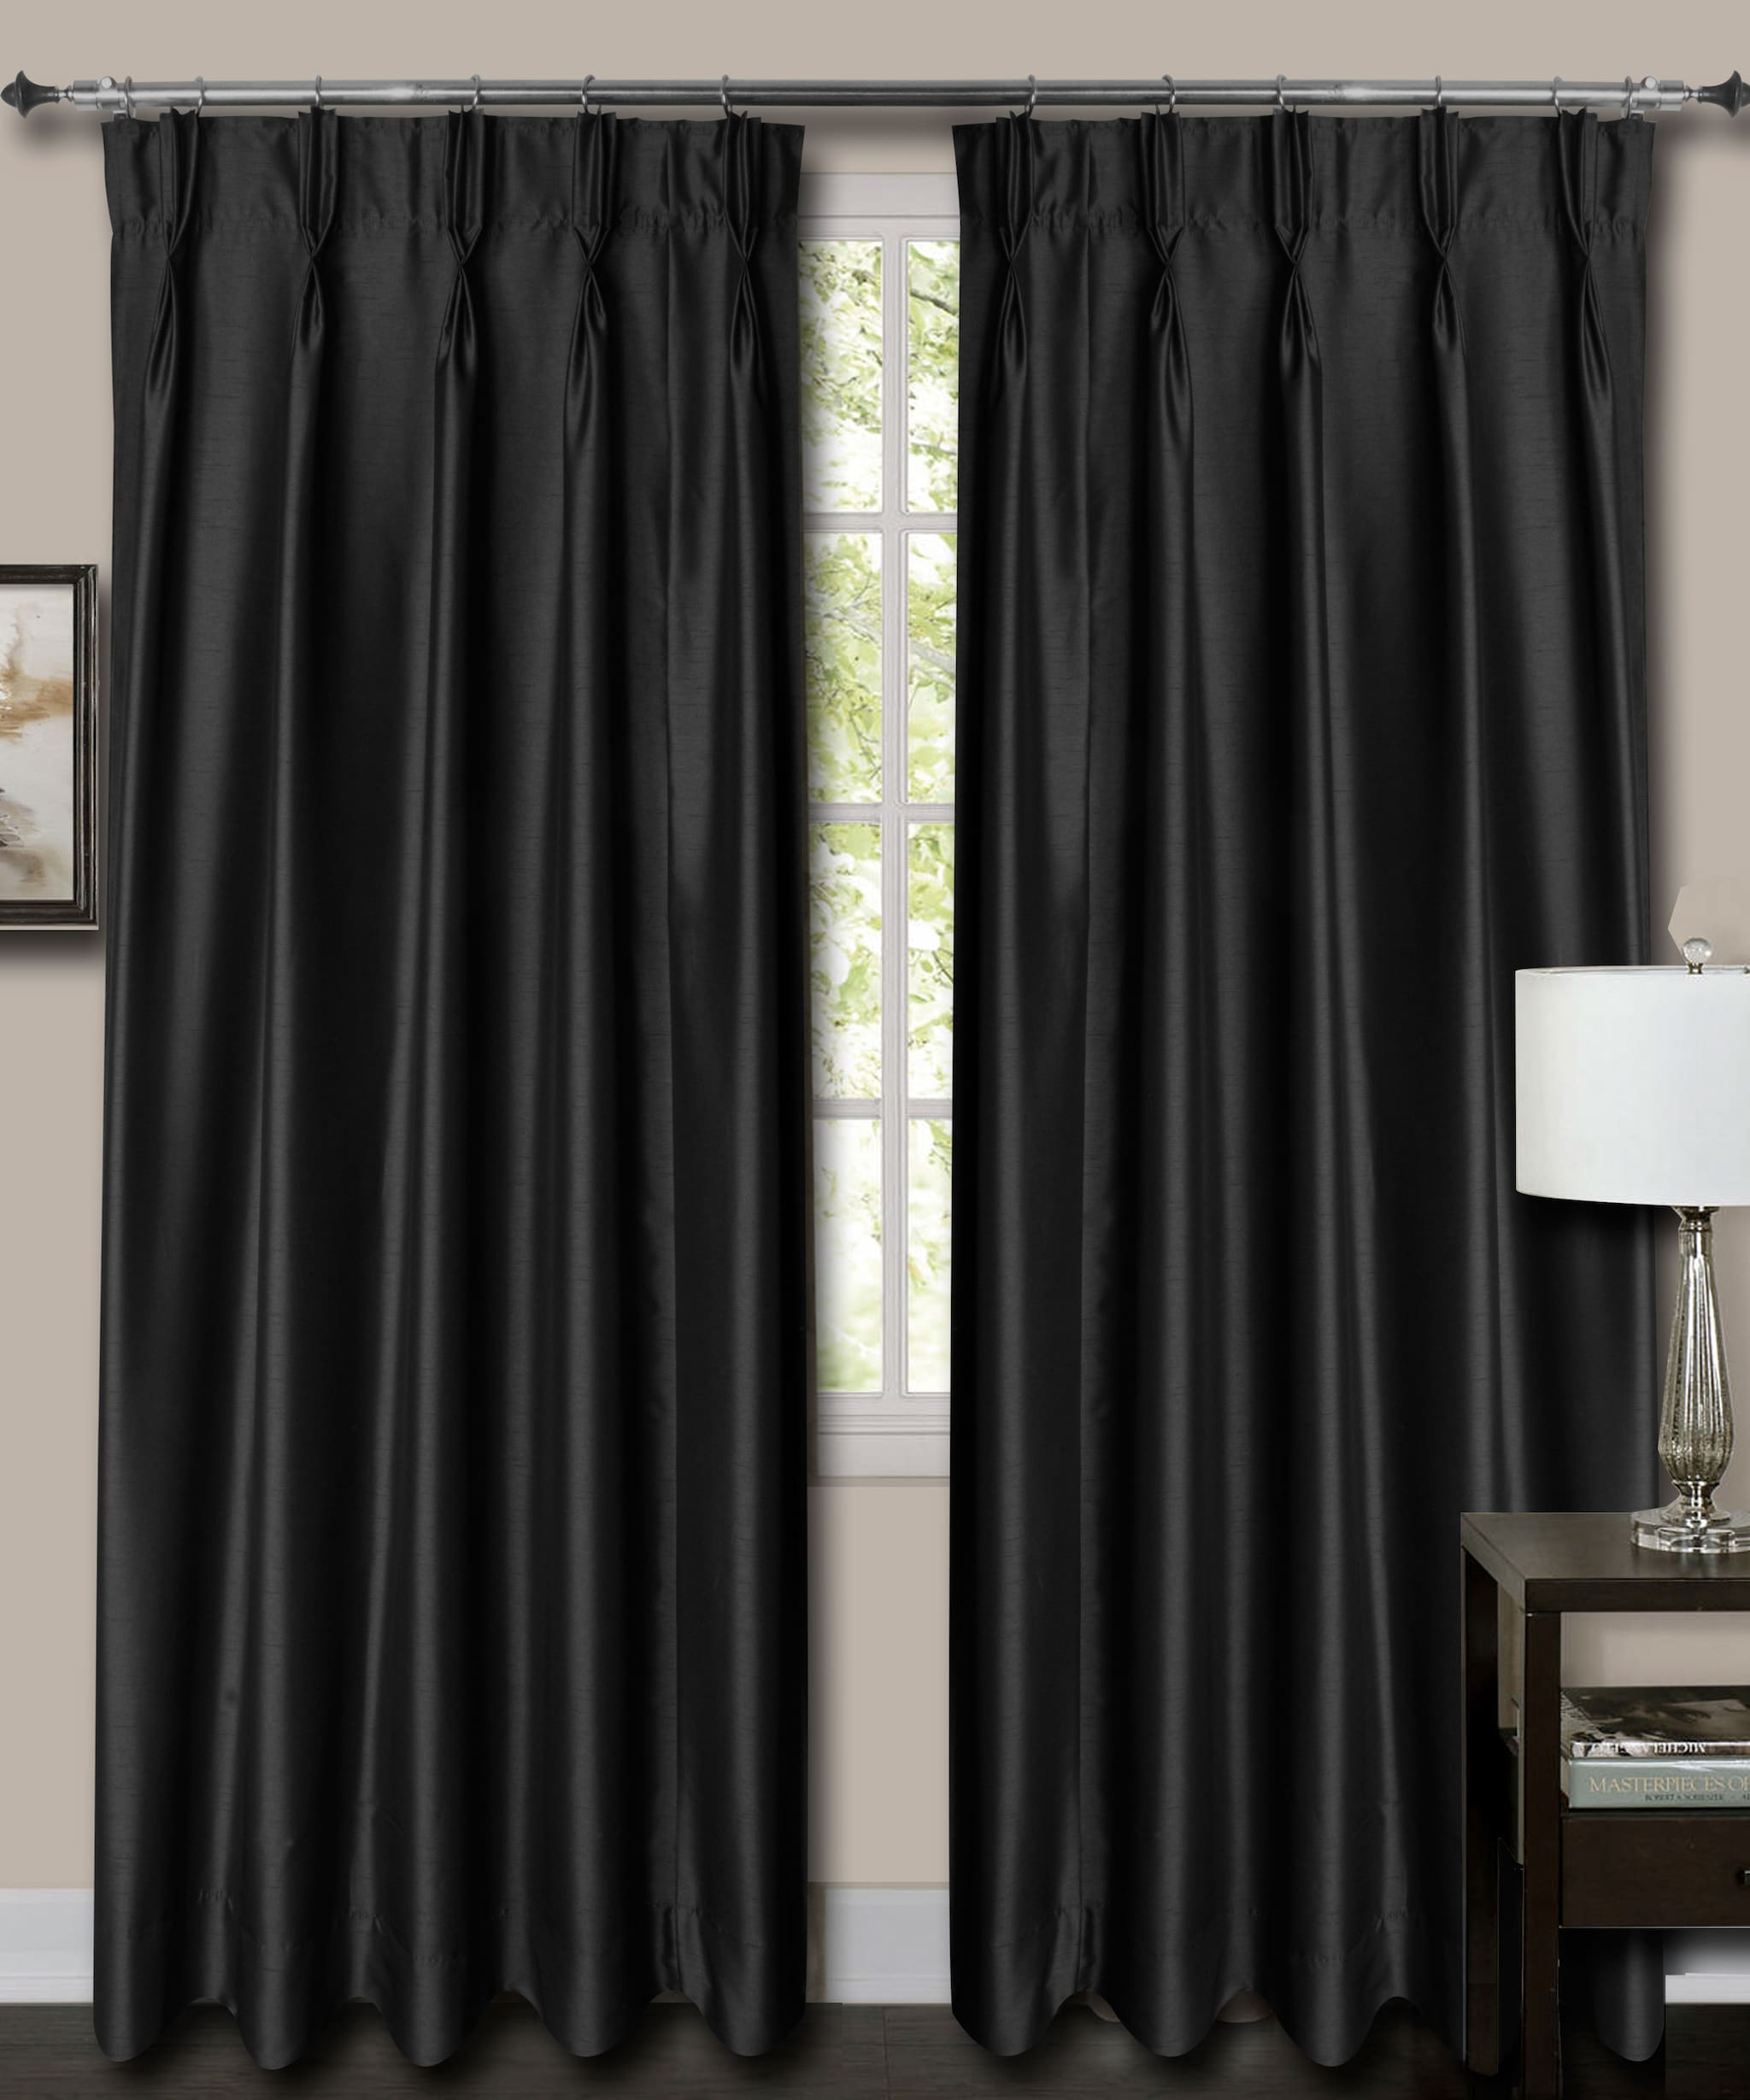 "French Pleat Top Black Faux Silk Dupioni Curtains. (78"" Wide,8 Feet Long,Blackout Lining)"